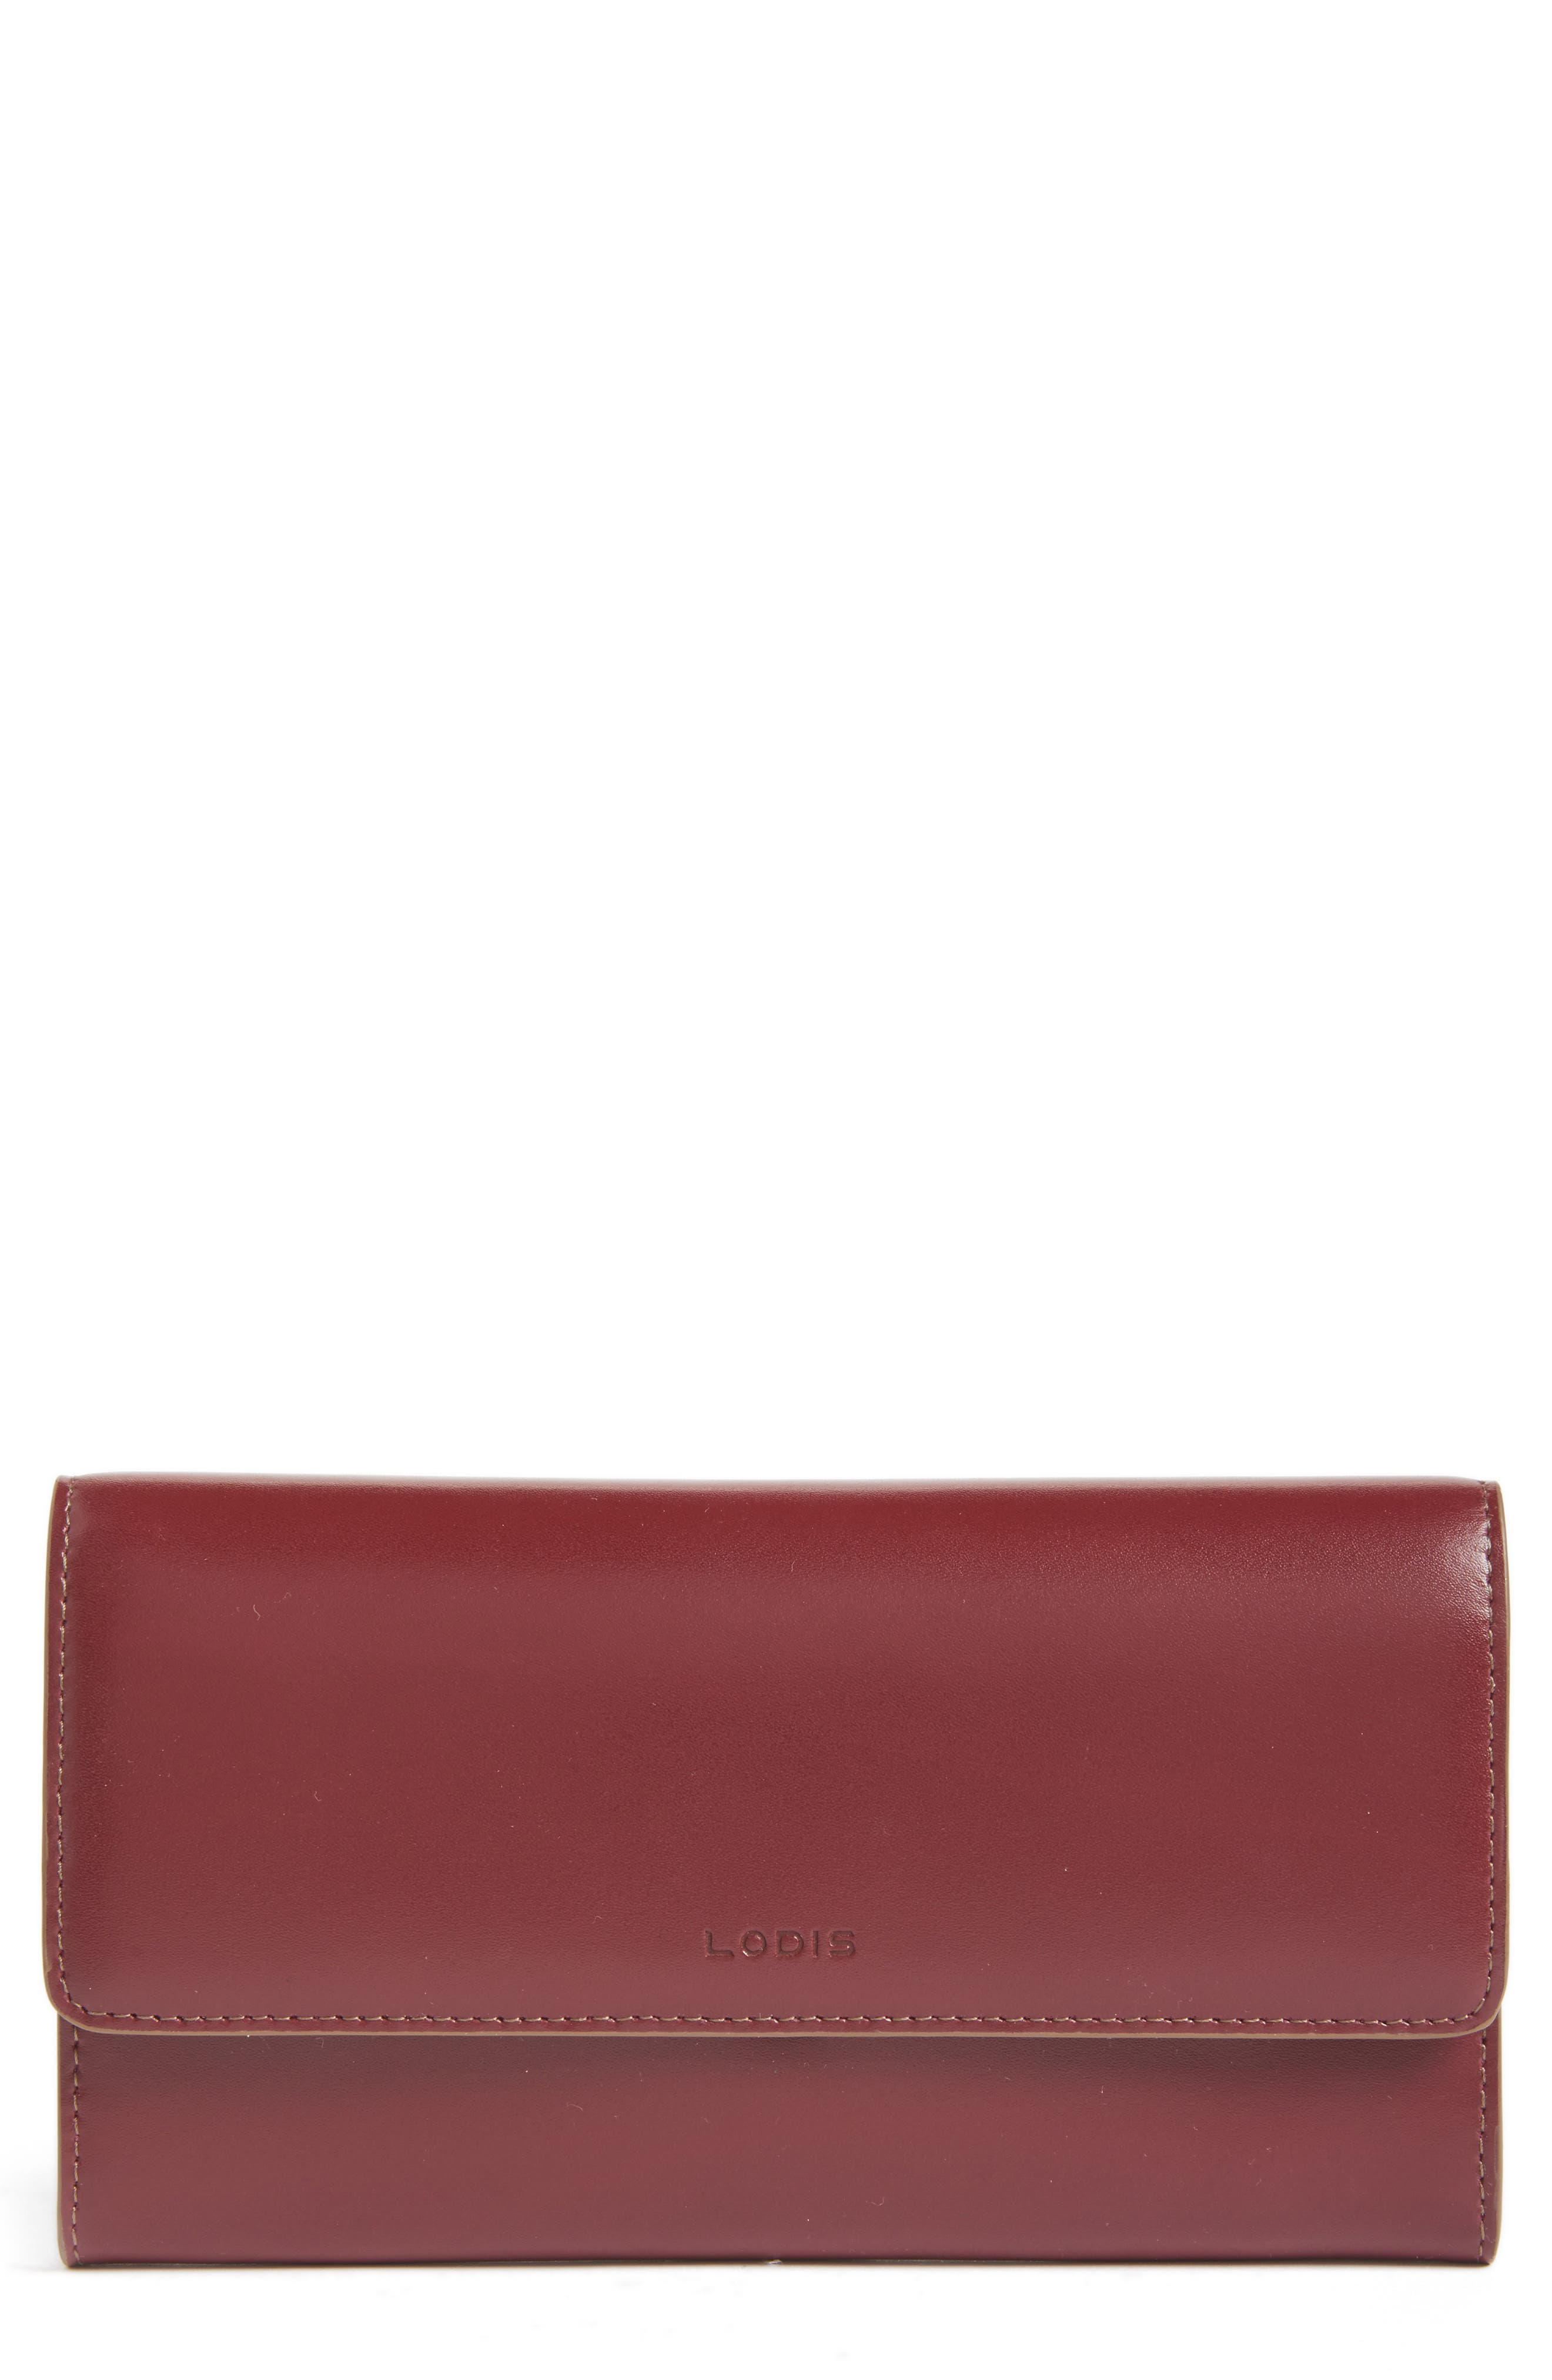 Alternate Image 1 Selected - Lodis Audrey - Cami RFID Leather Clutch Wallet